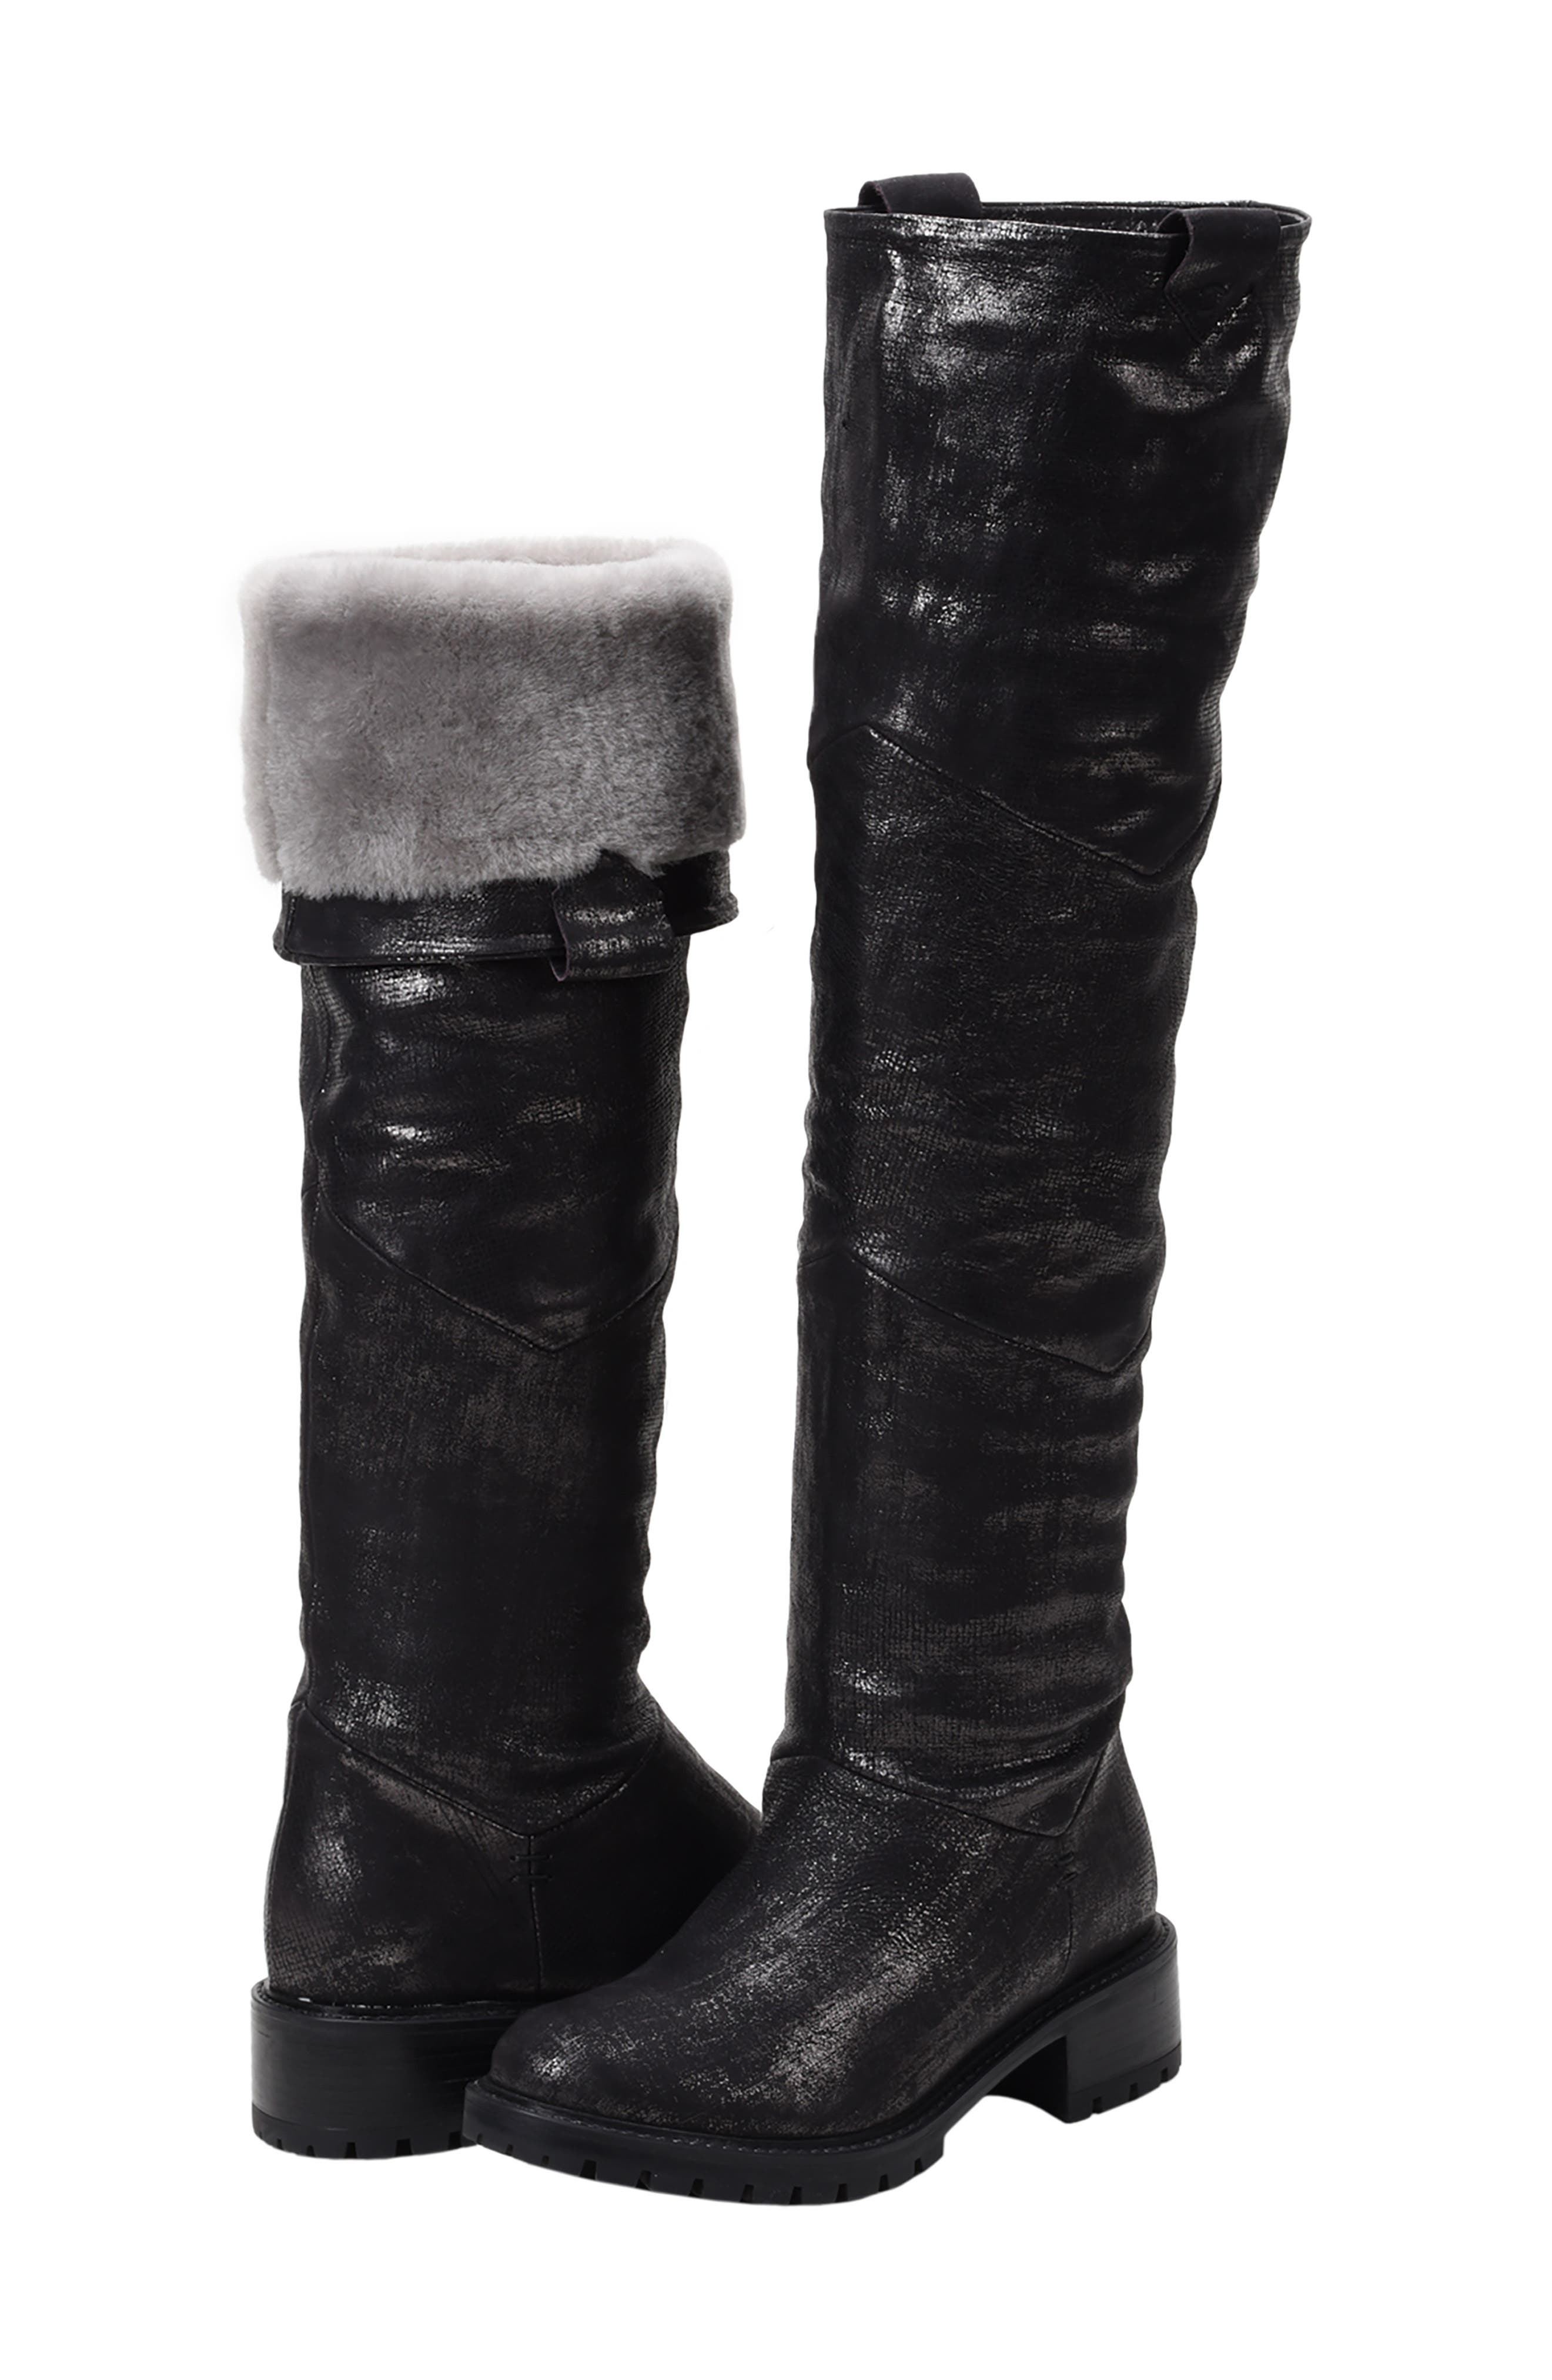 Elena Waterproof Genuine Shearling Lined Knee High Boot,                             Alternate thumbnail 8, color,                             BLACK/ SILVER LEATHER